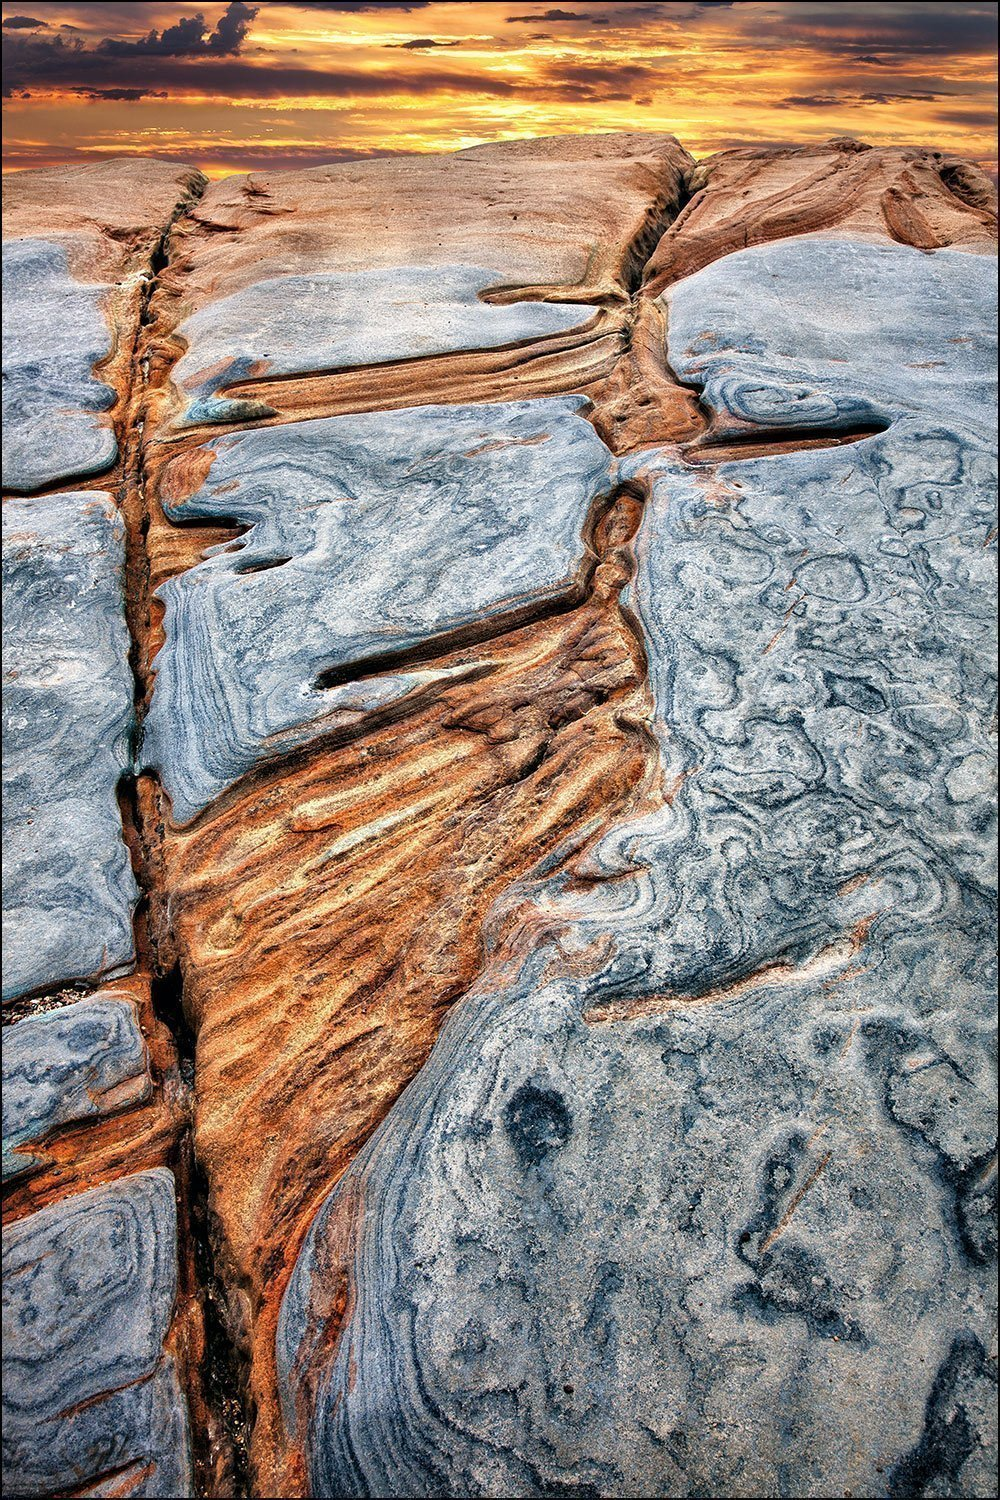 Photograph of abstract rock patterns at Pacific ocean shore sunset. by Bob Estrin Fine Art Photography